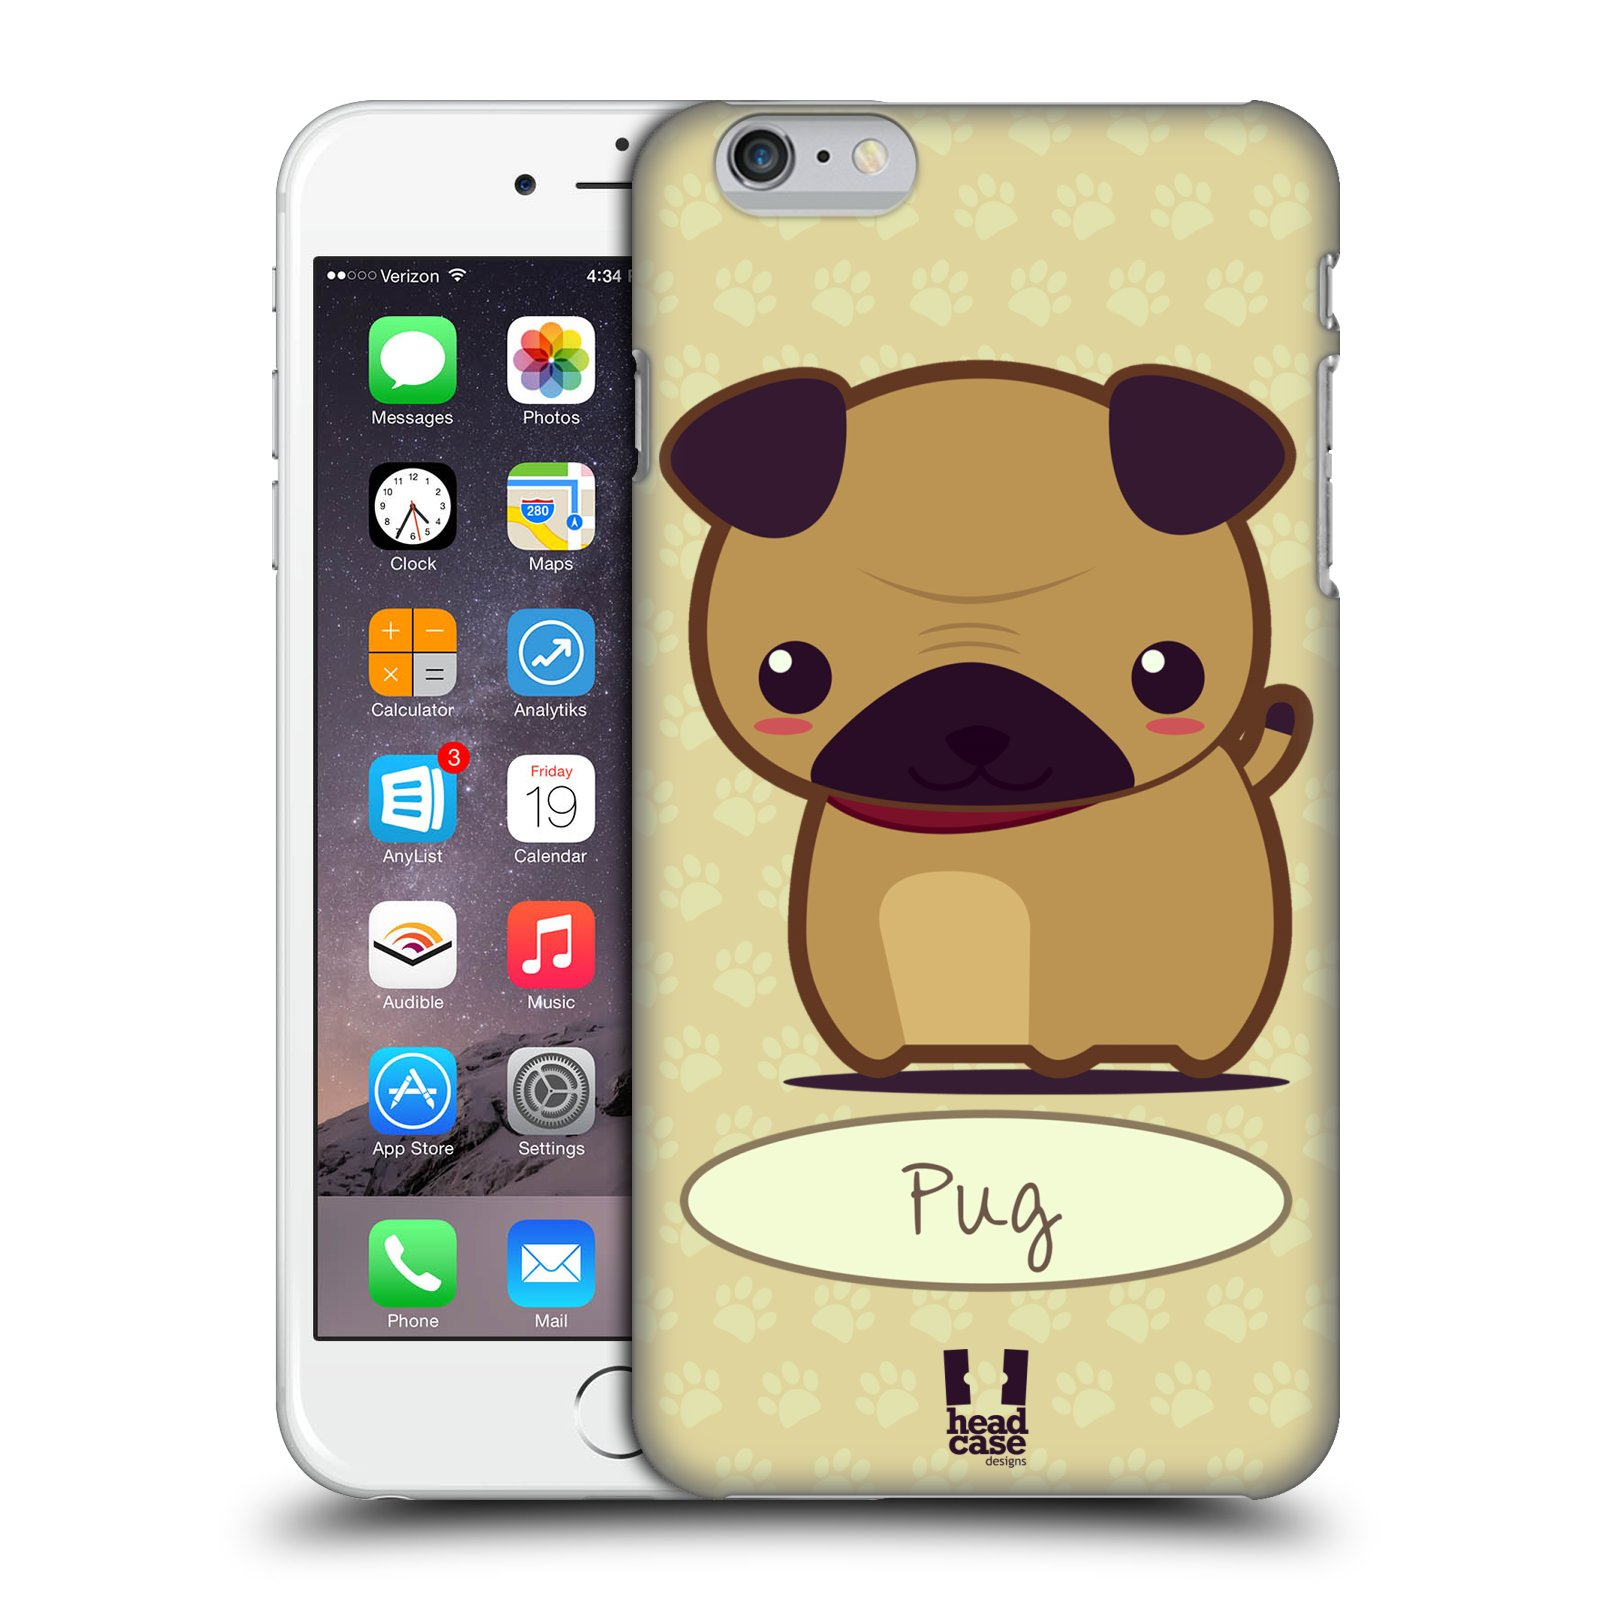 HEAD CASE DESIGNS WONDER DOGS CASE COVER FOR APPLE iPHONE 6 PLUS 5.5